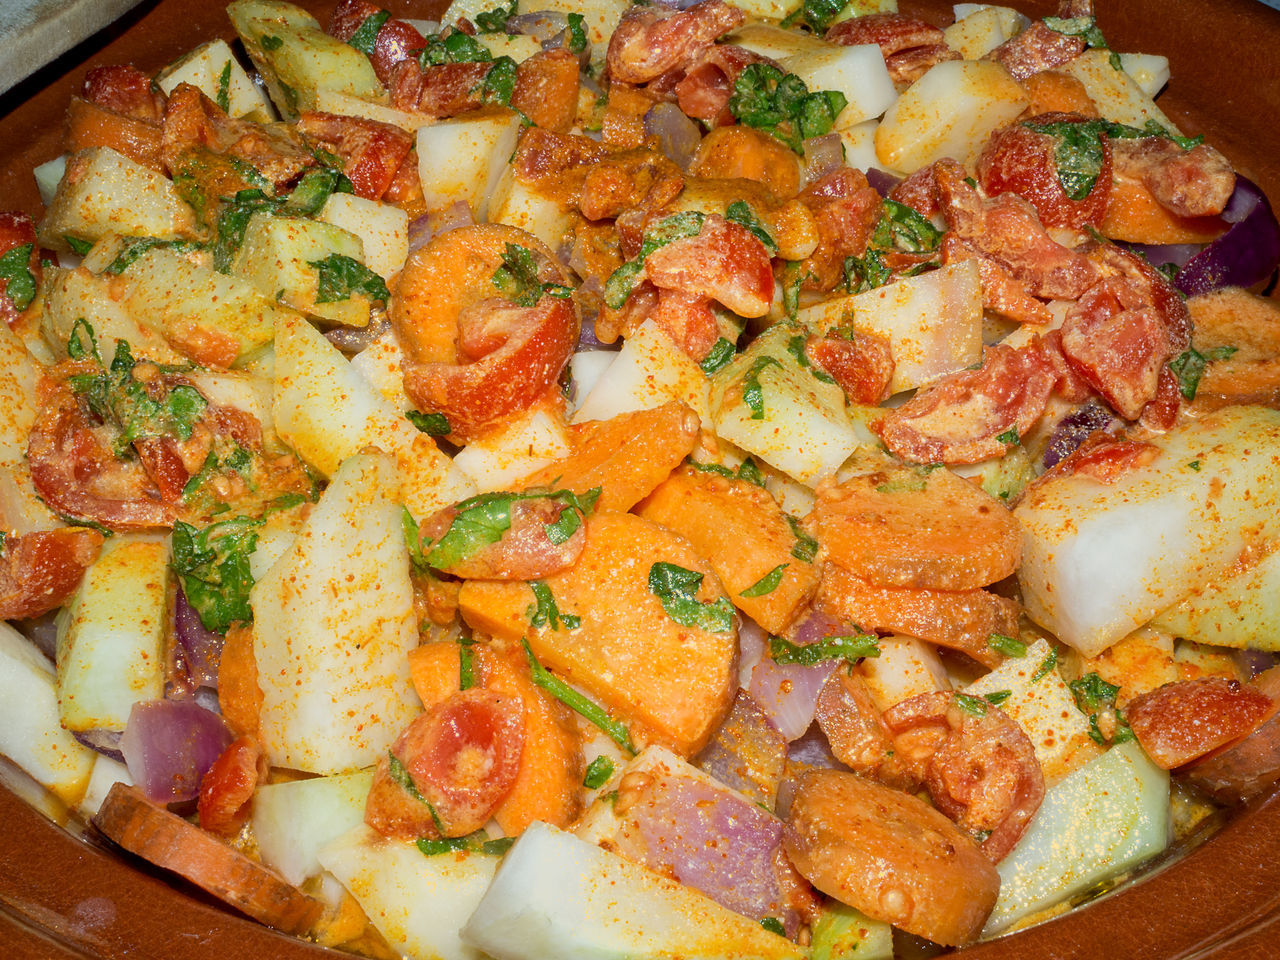 Baked Vegetable Boiled Vegetables Carrots Close-up Cooked Cooked Vegetables Curry Dietetic Eat Food Food And Drink Freshness Healthy Healthy Eating Light Marocco Food Mix Vegetable Onions Parsley Patatoes Ready-to-eat Tajine Vegetable Vegetables Vegetarian Food